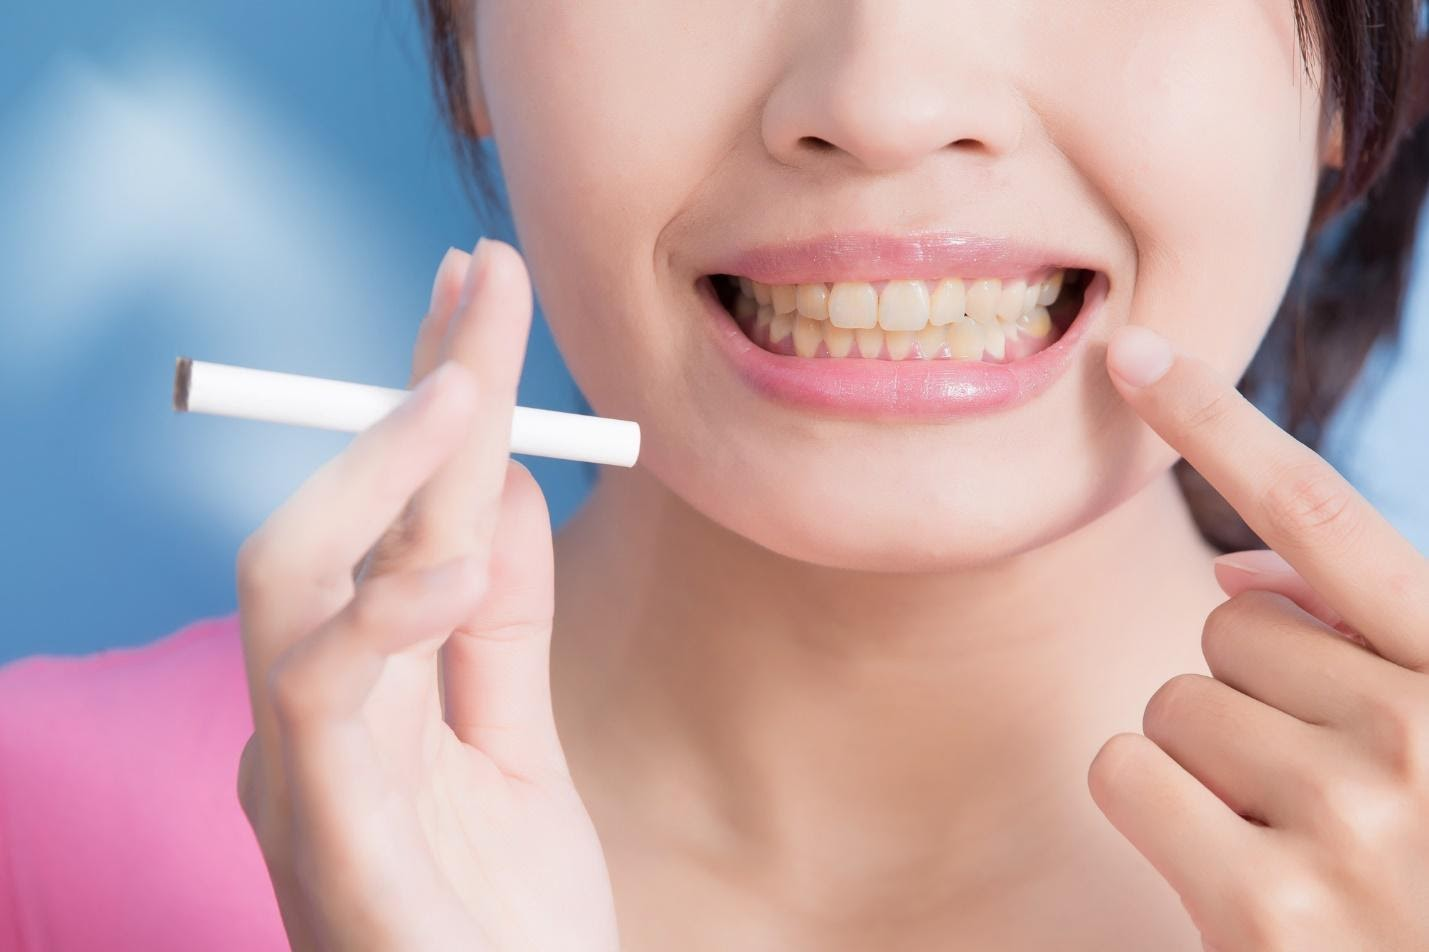 Causes of yellow teeth: woman holding cigarette and pointing at her teeth.